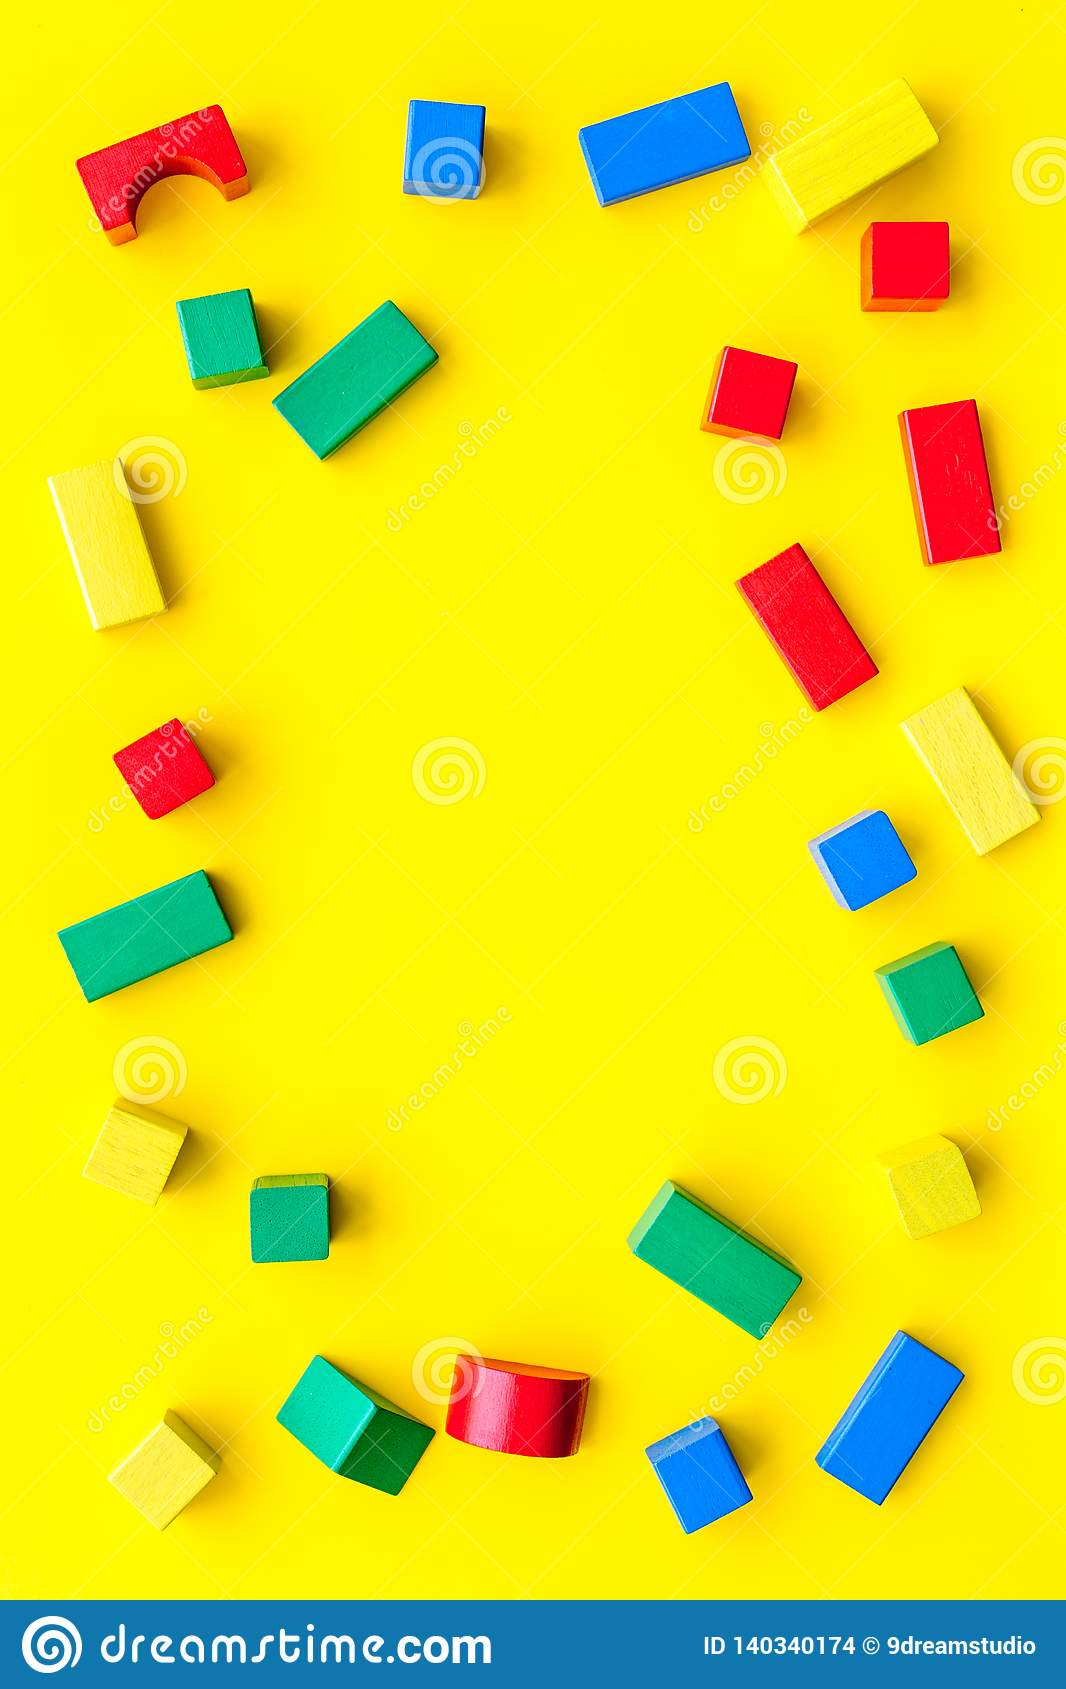 Construction game for kids. Wooden building blocks, toy bricks on yellow background top view space for text frame